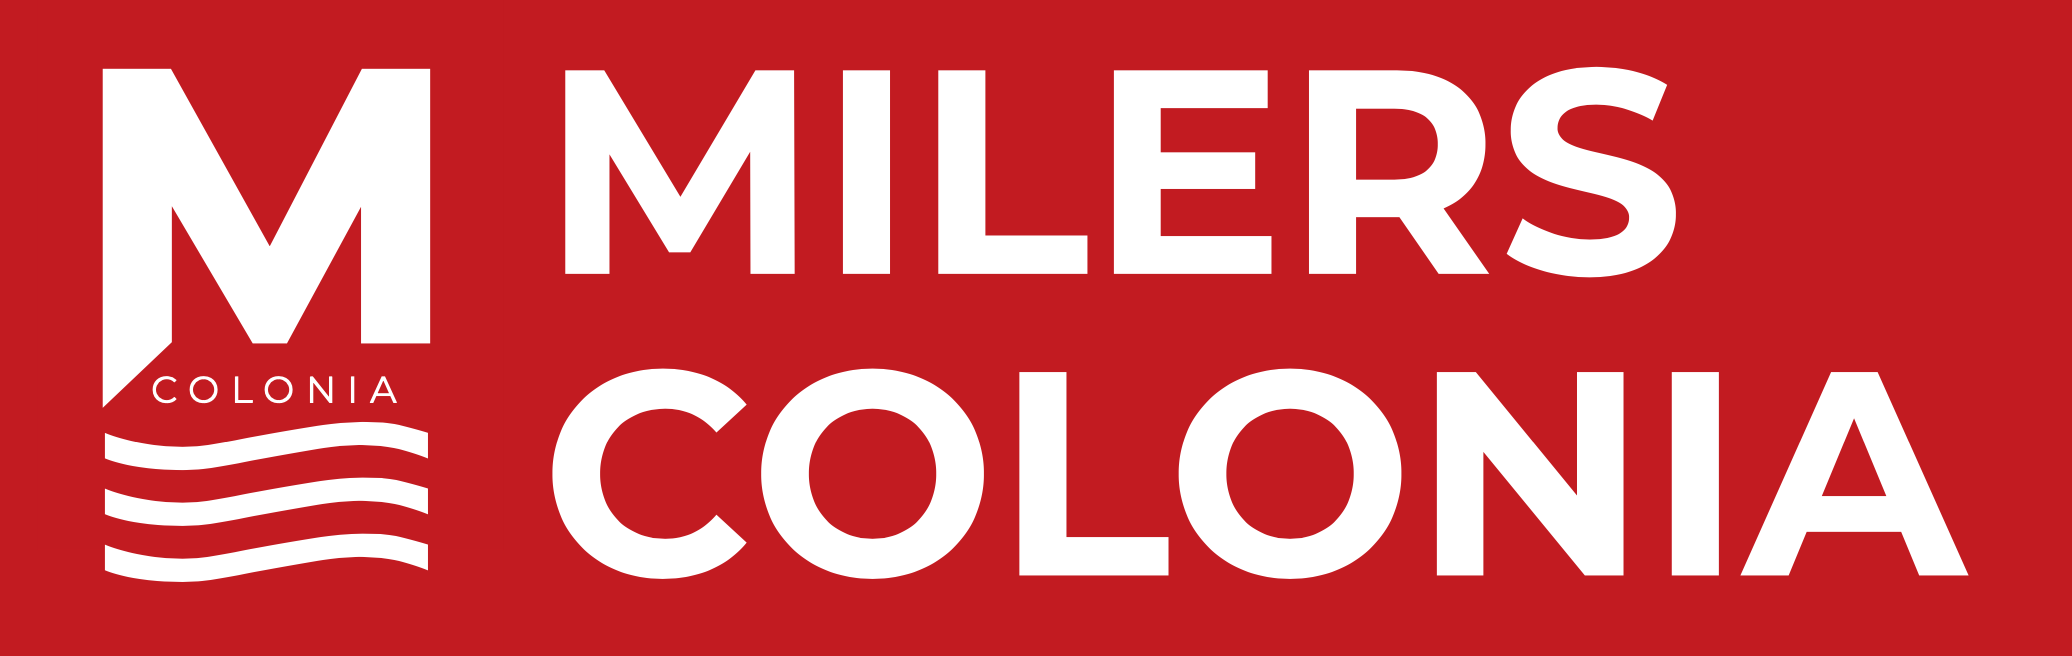 Milers Colonia